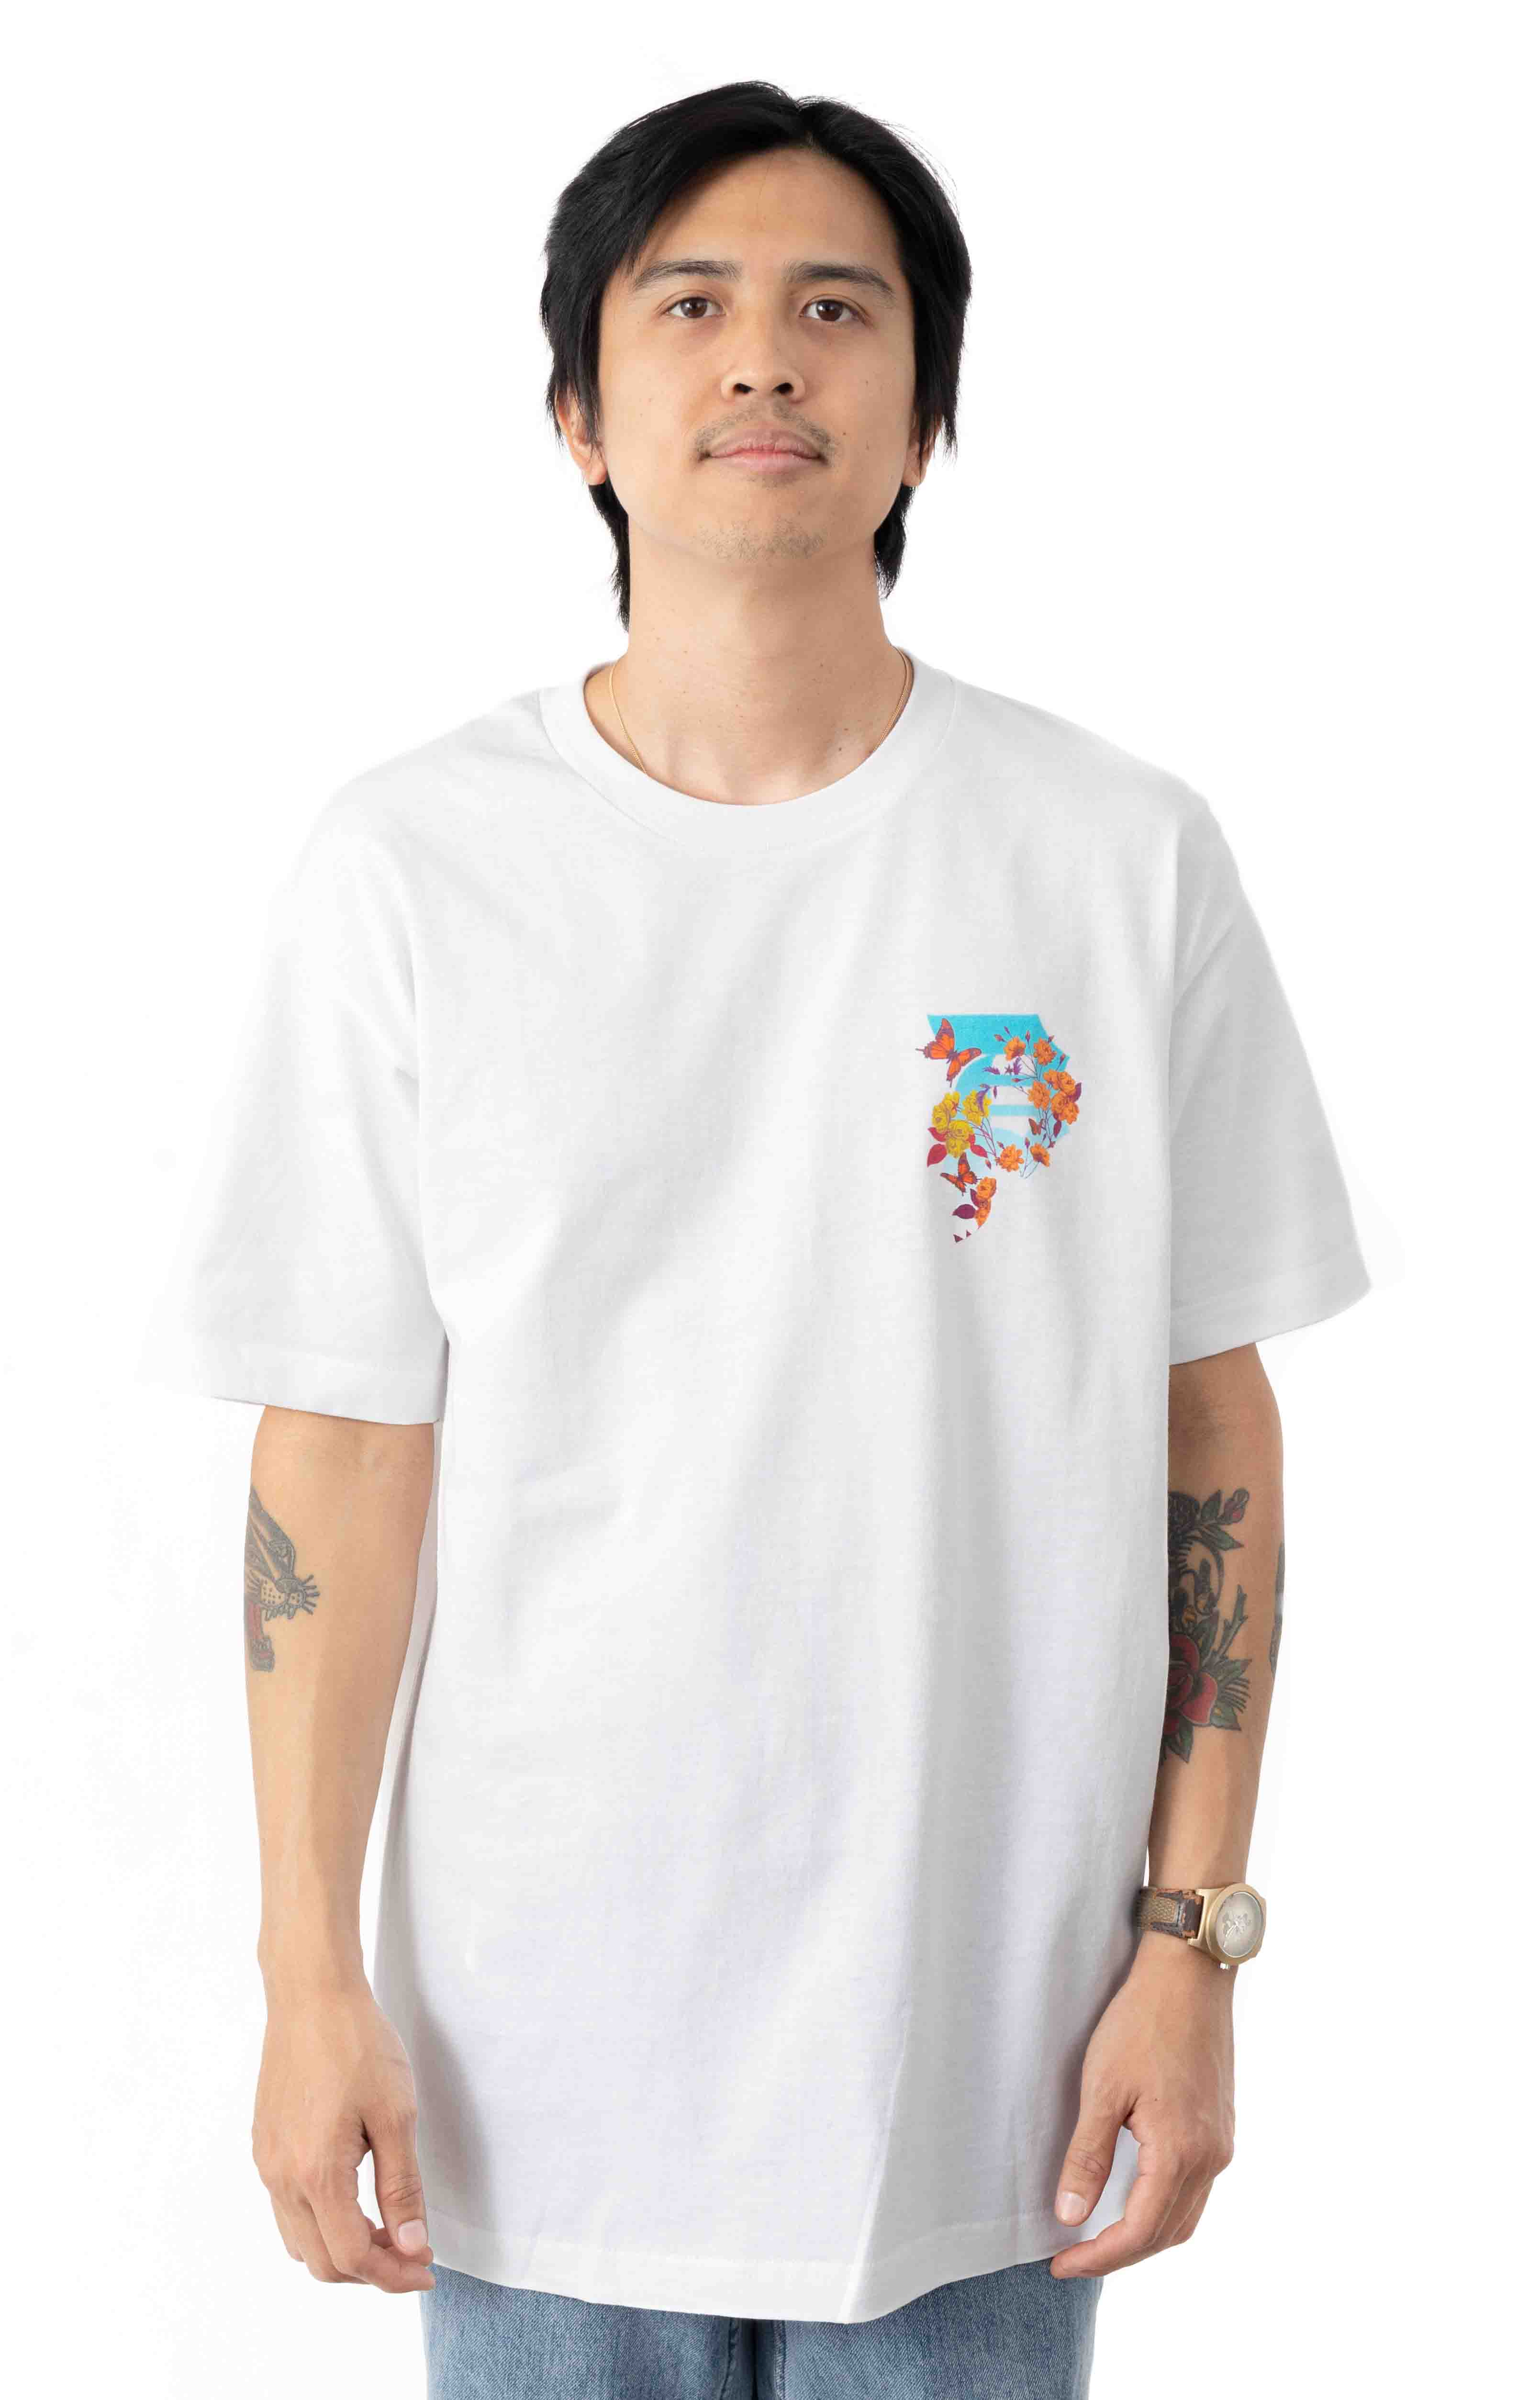 Dirty P Cycles T-Shirt - White  2